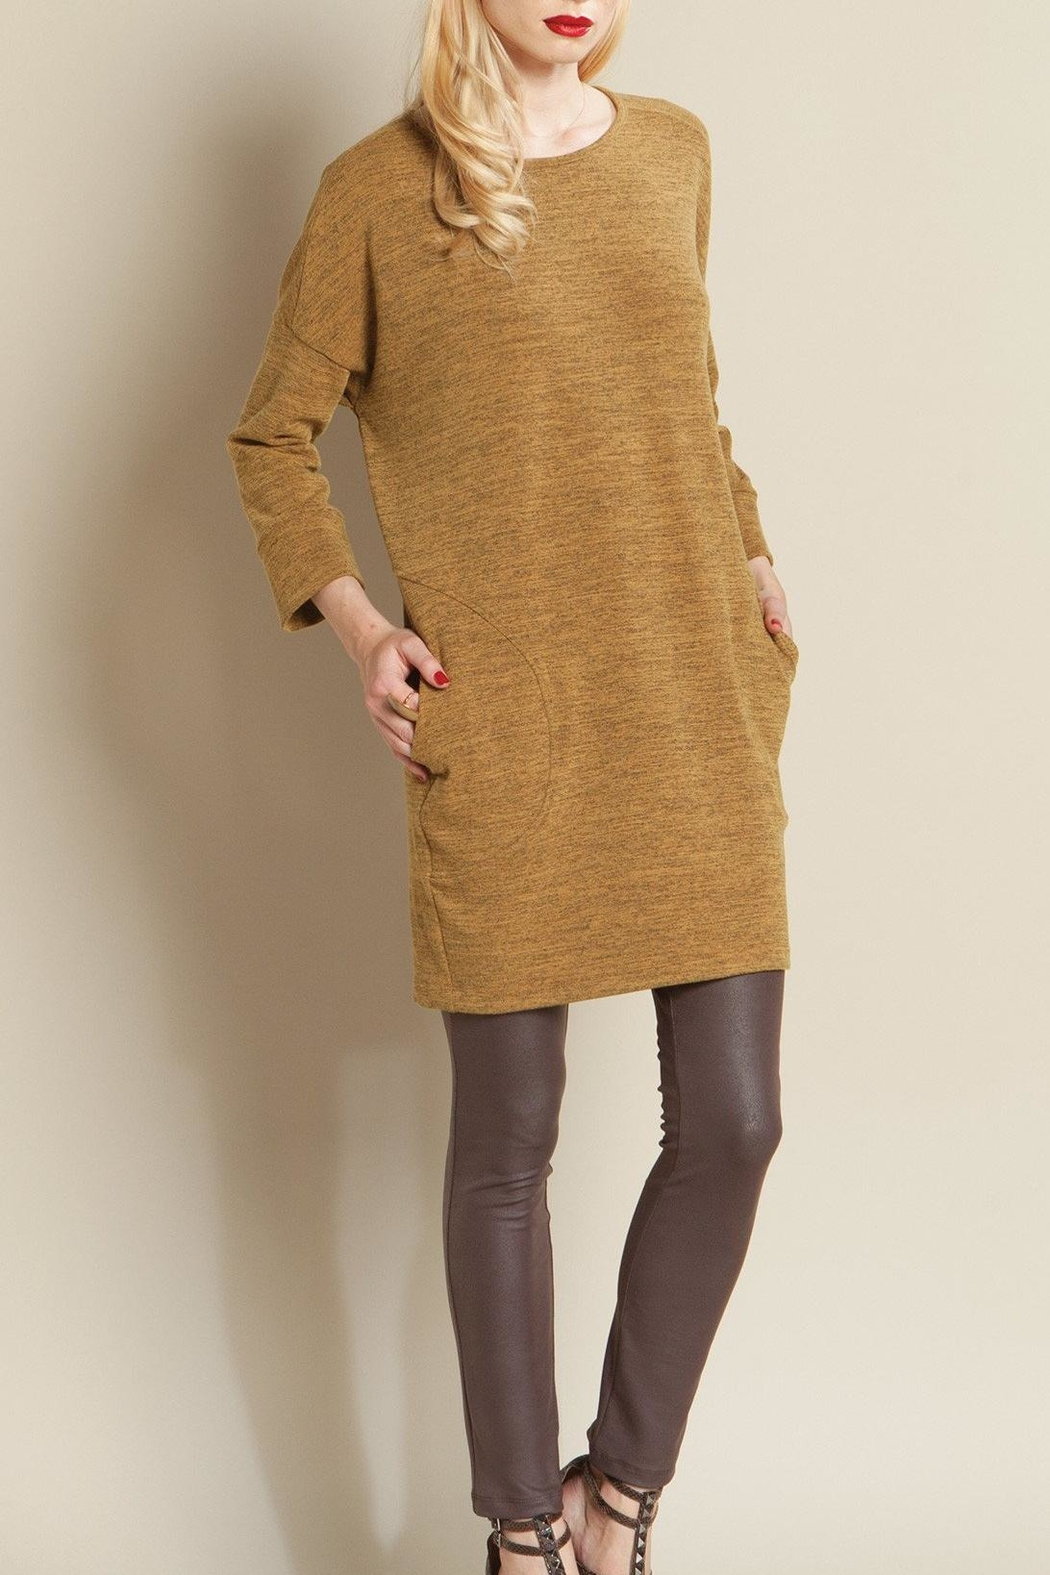 Clara Sunwoo Pocket Sweater Tunic from Texas by The Crazy Peacock ...